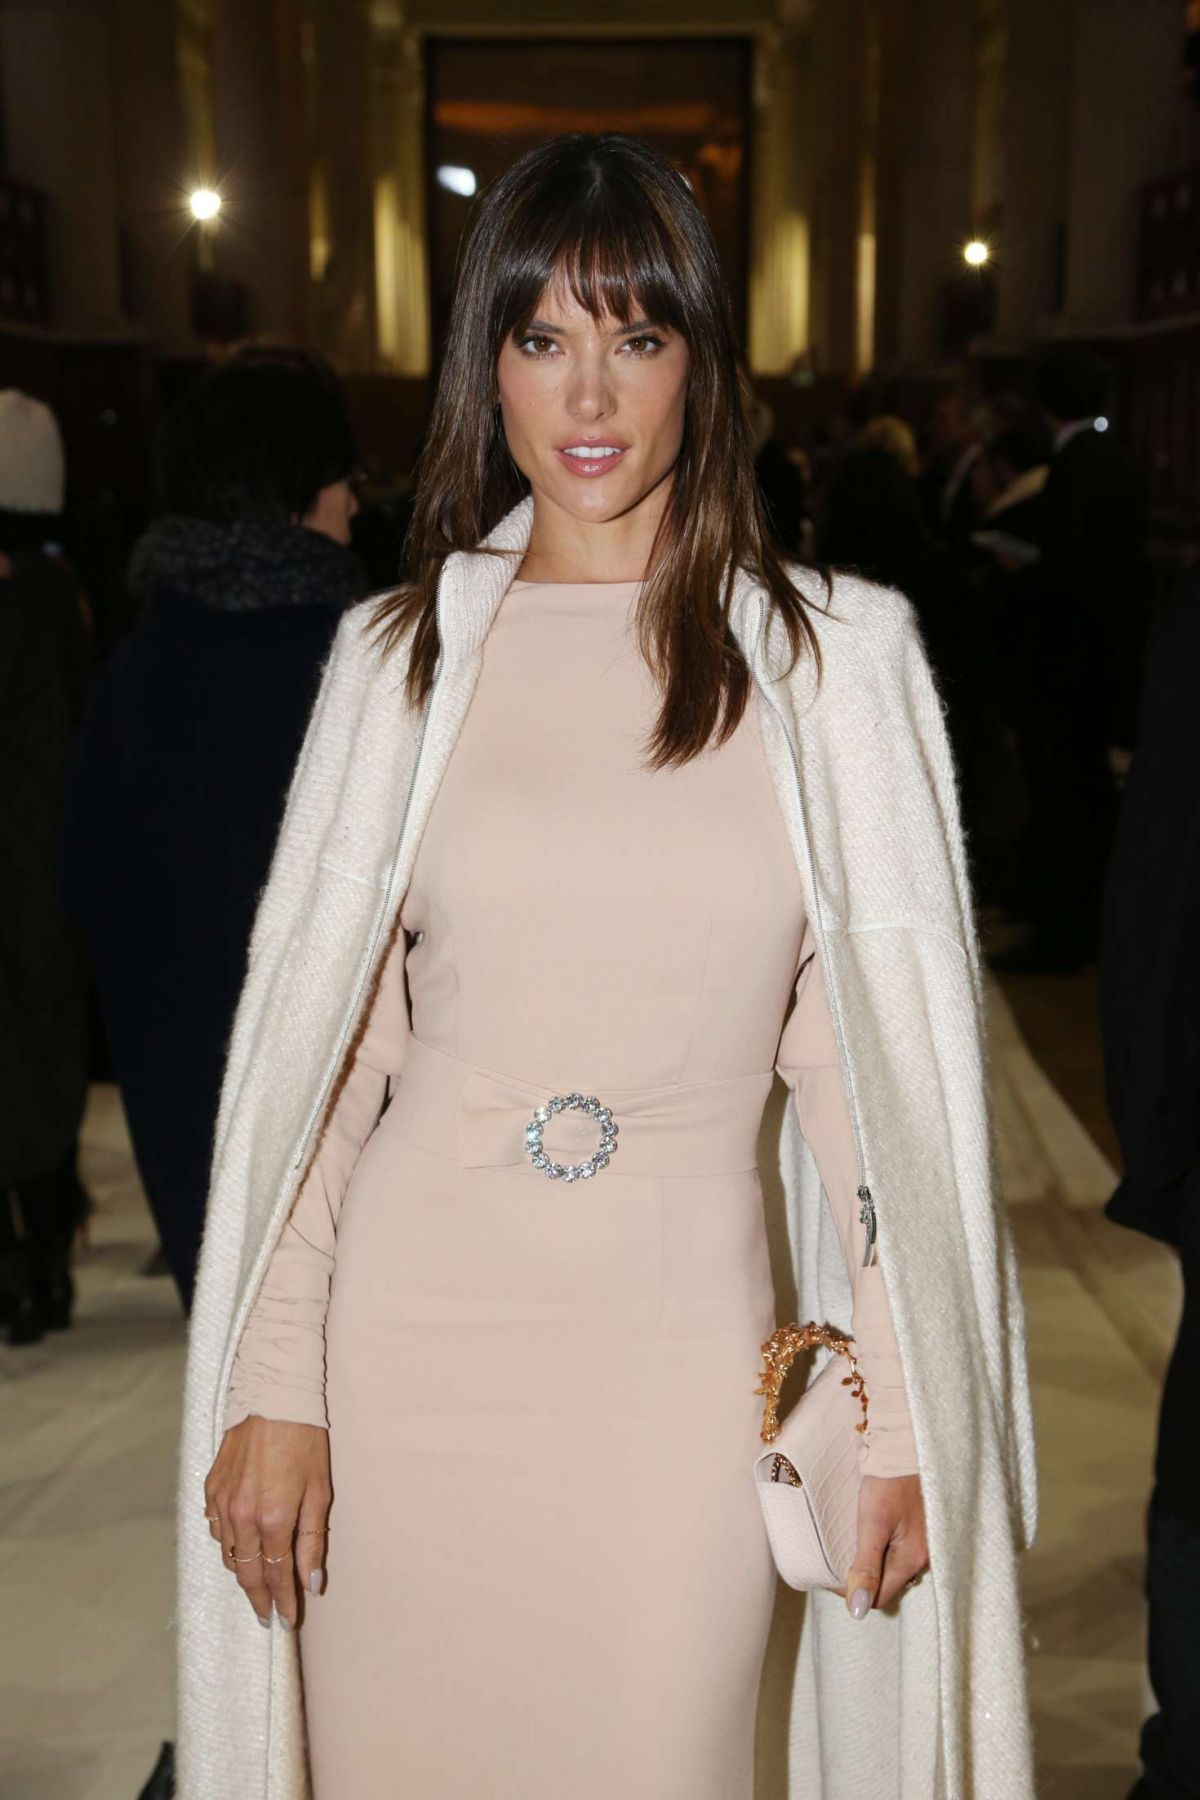 ALESSANDRA AMBROSIO at Bonpoint Collection Winter 2017 Fashion Show in Paris